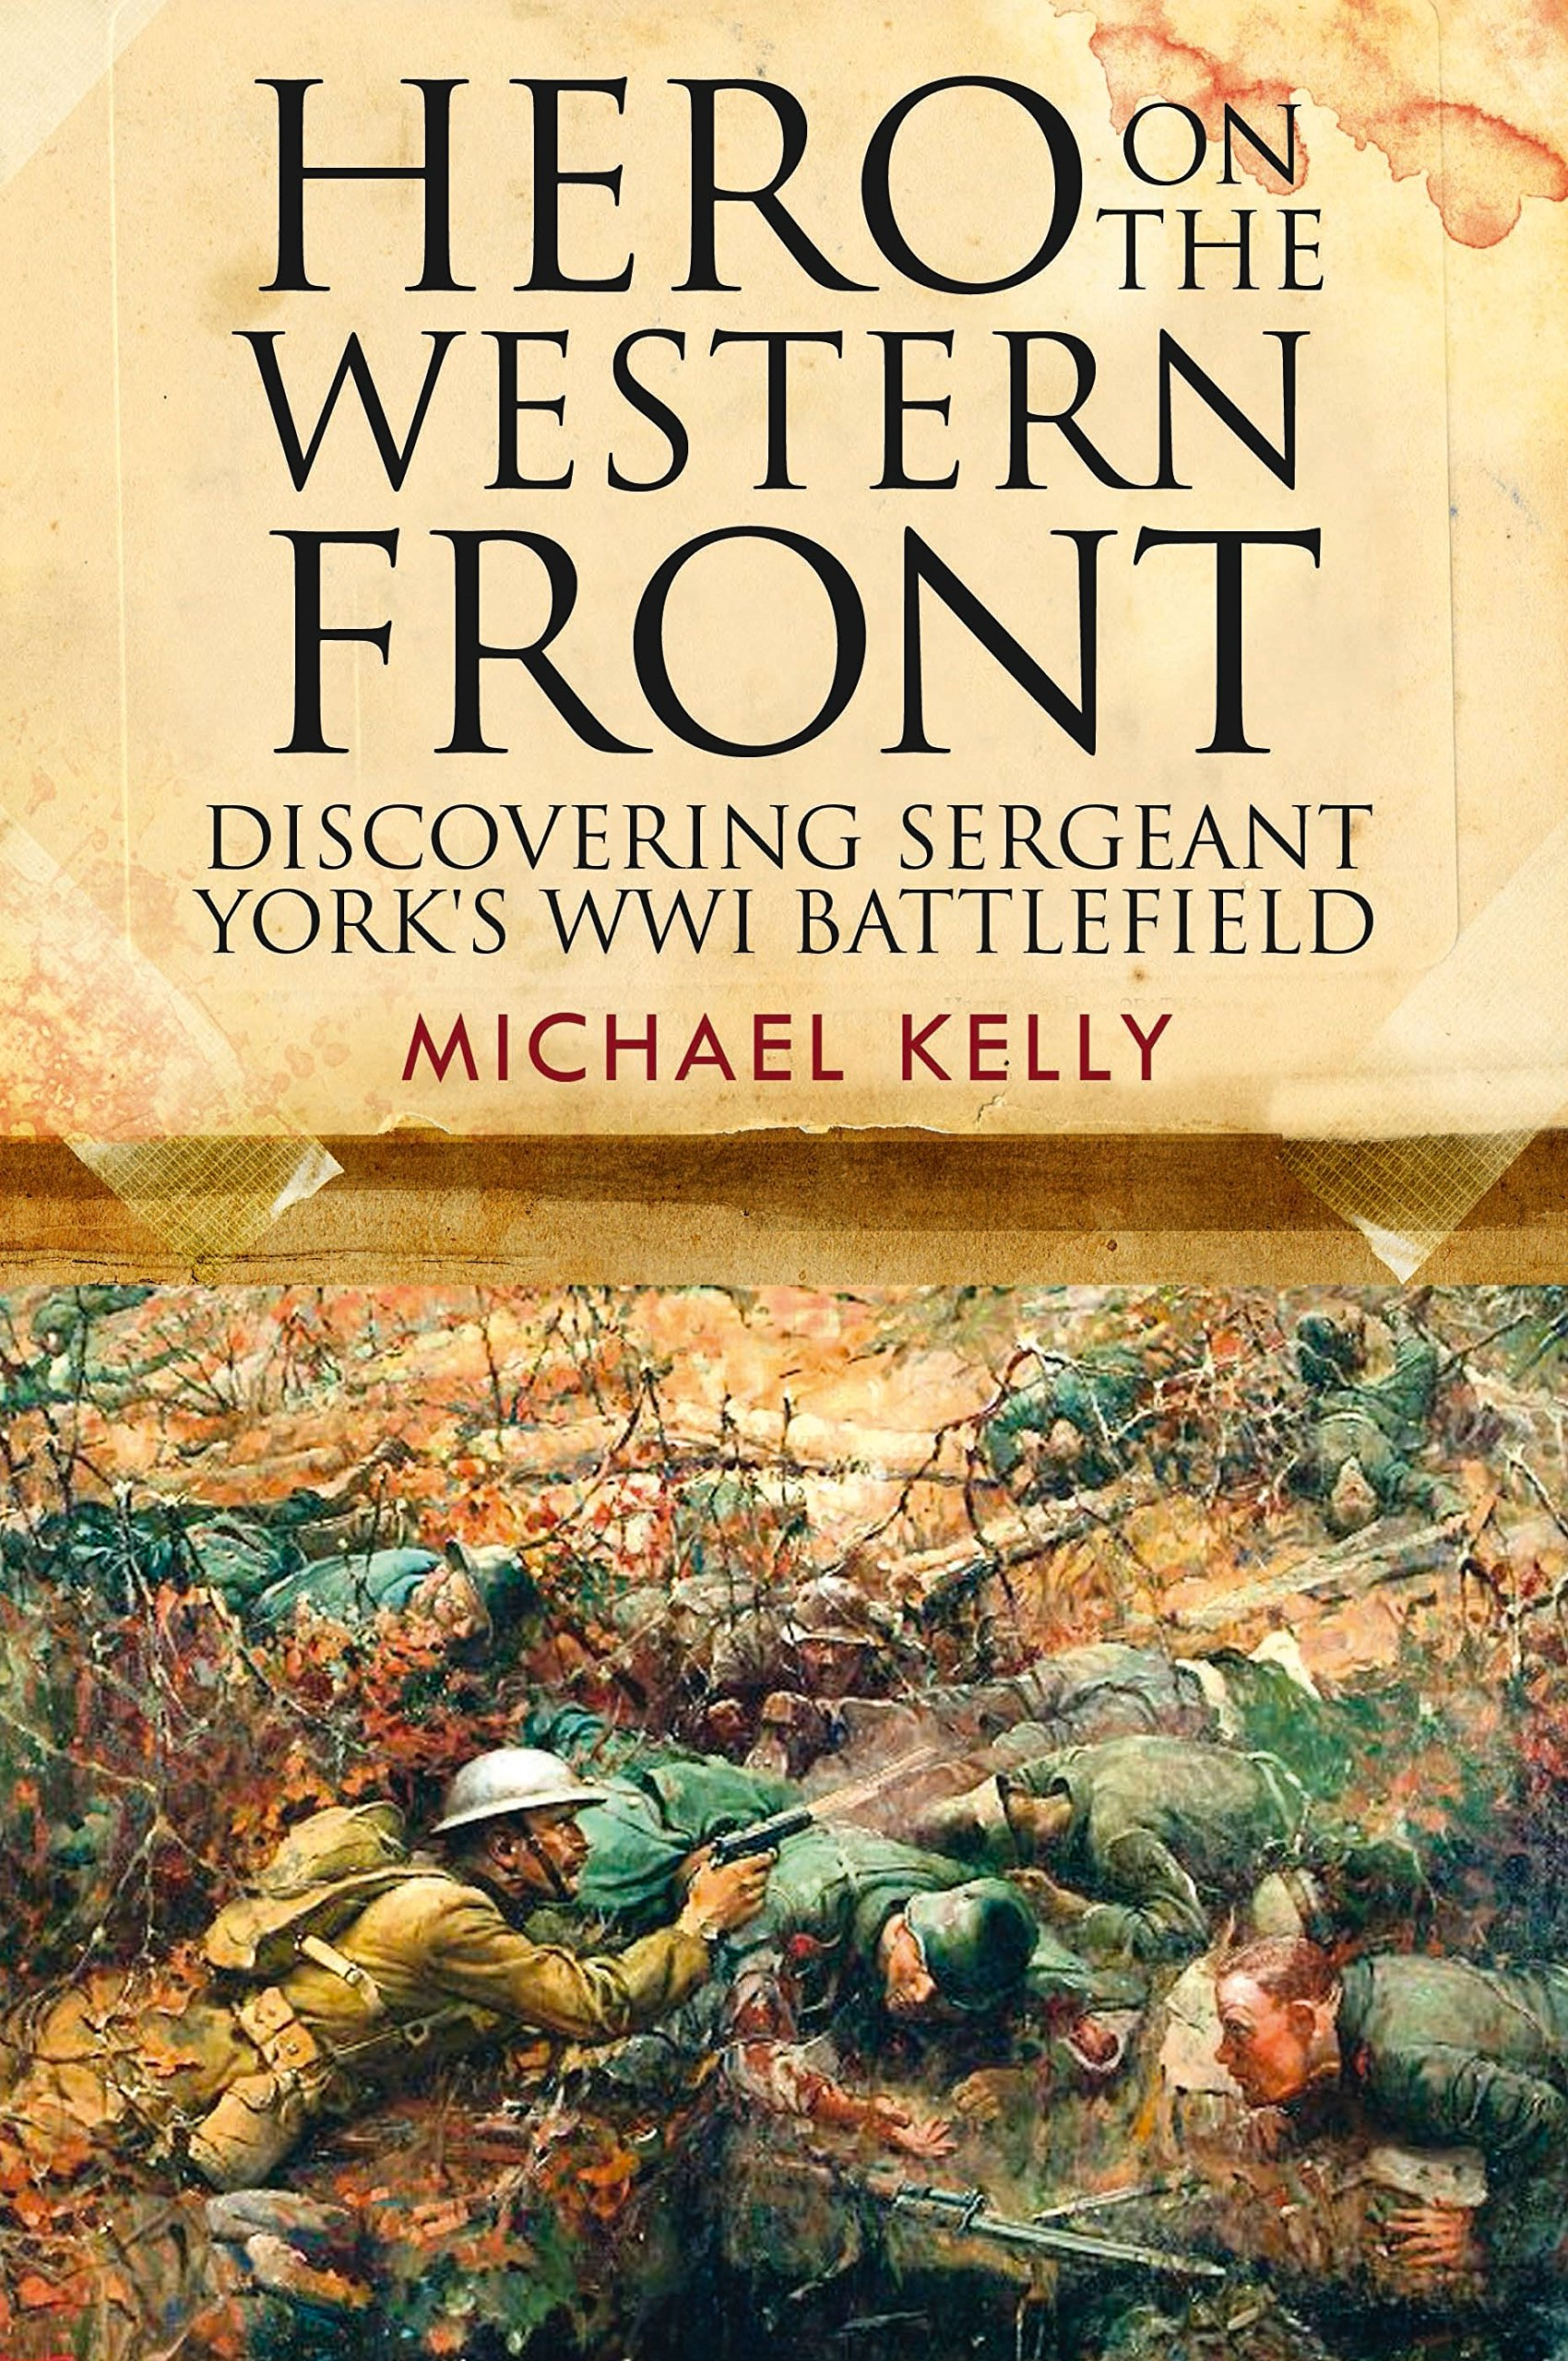 Hero on the Western Front: Discovering Alvin York's WWI Battlefield